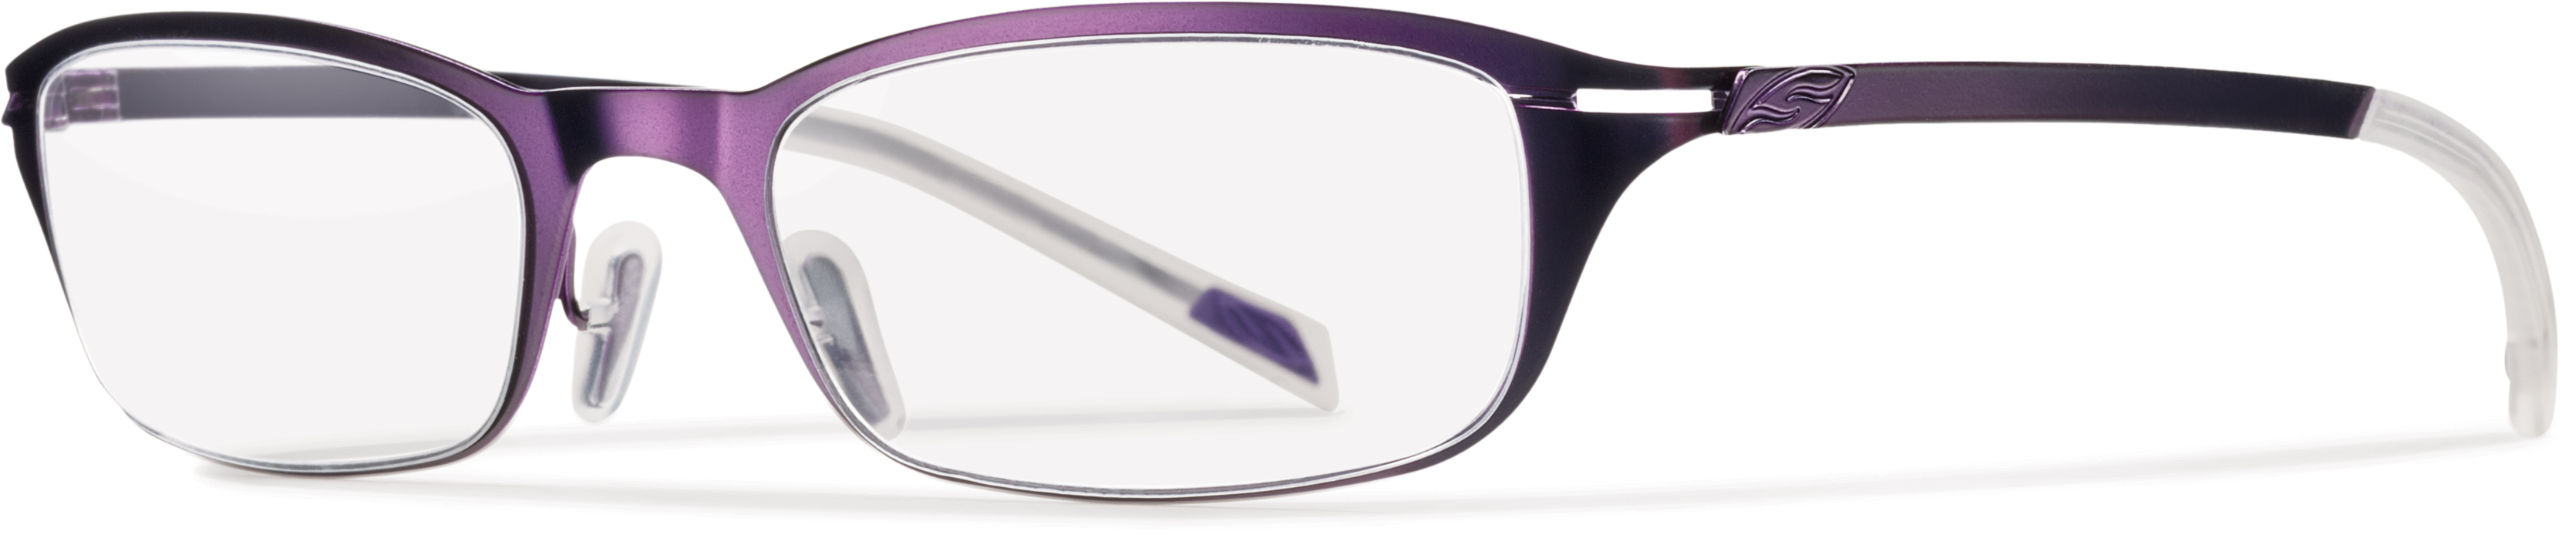 Camby Matte Violet